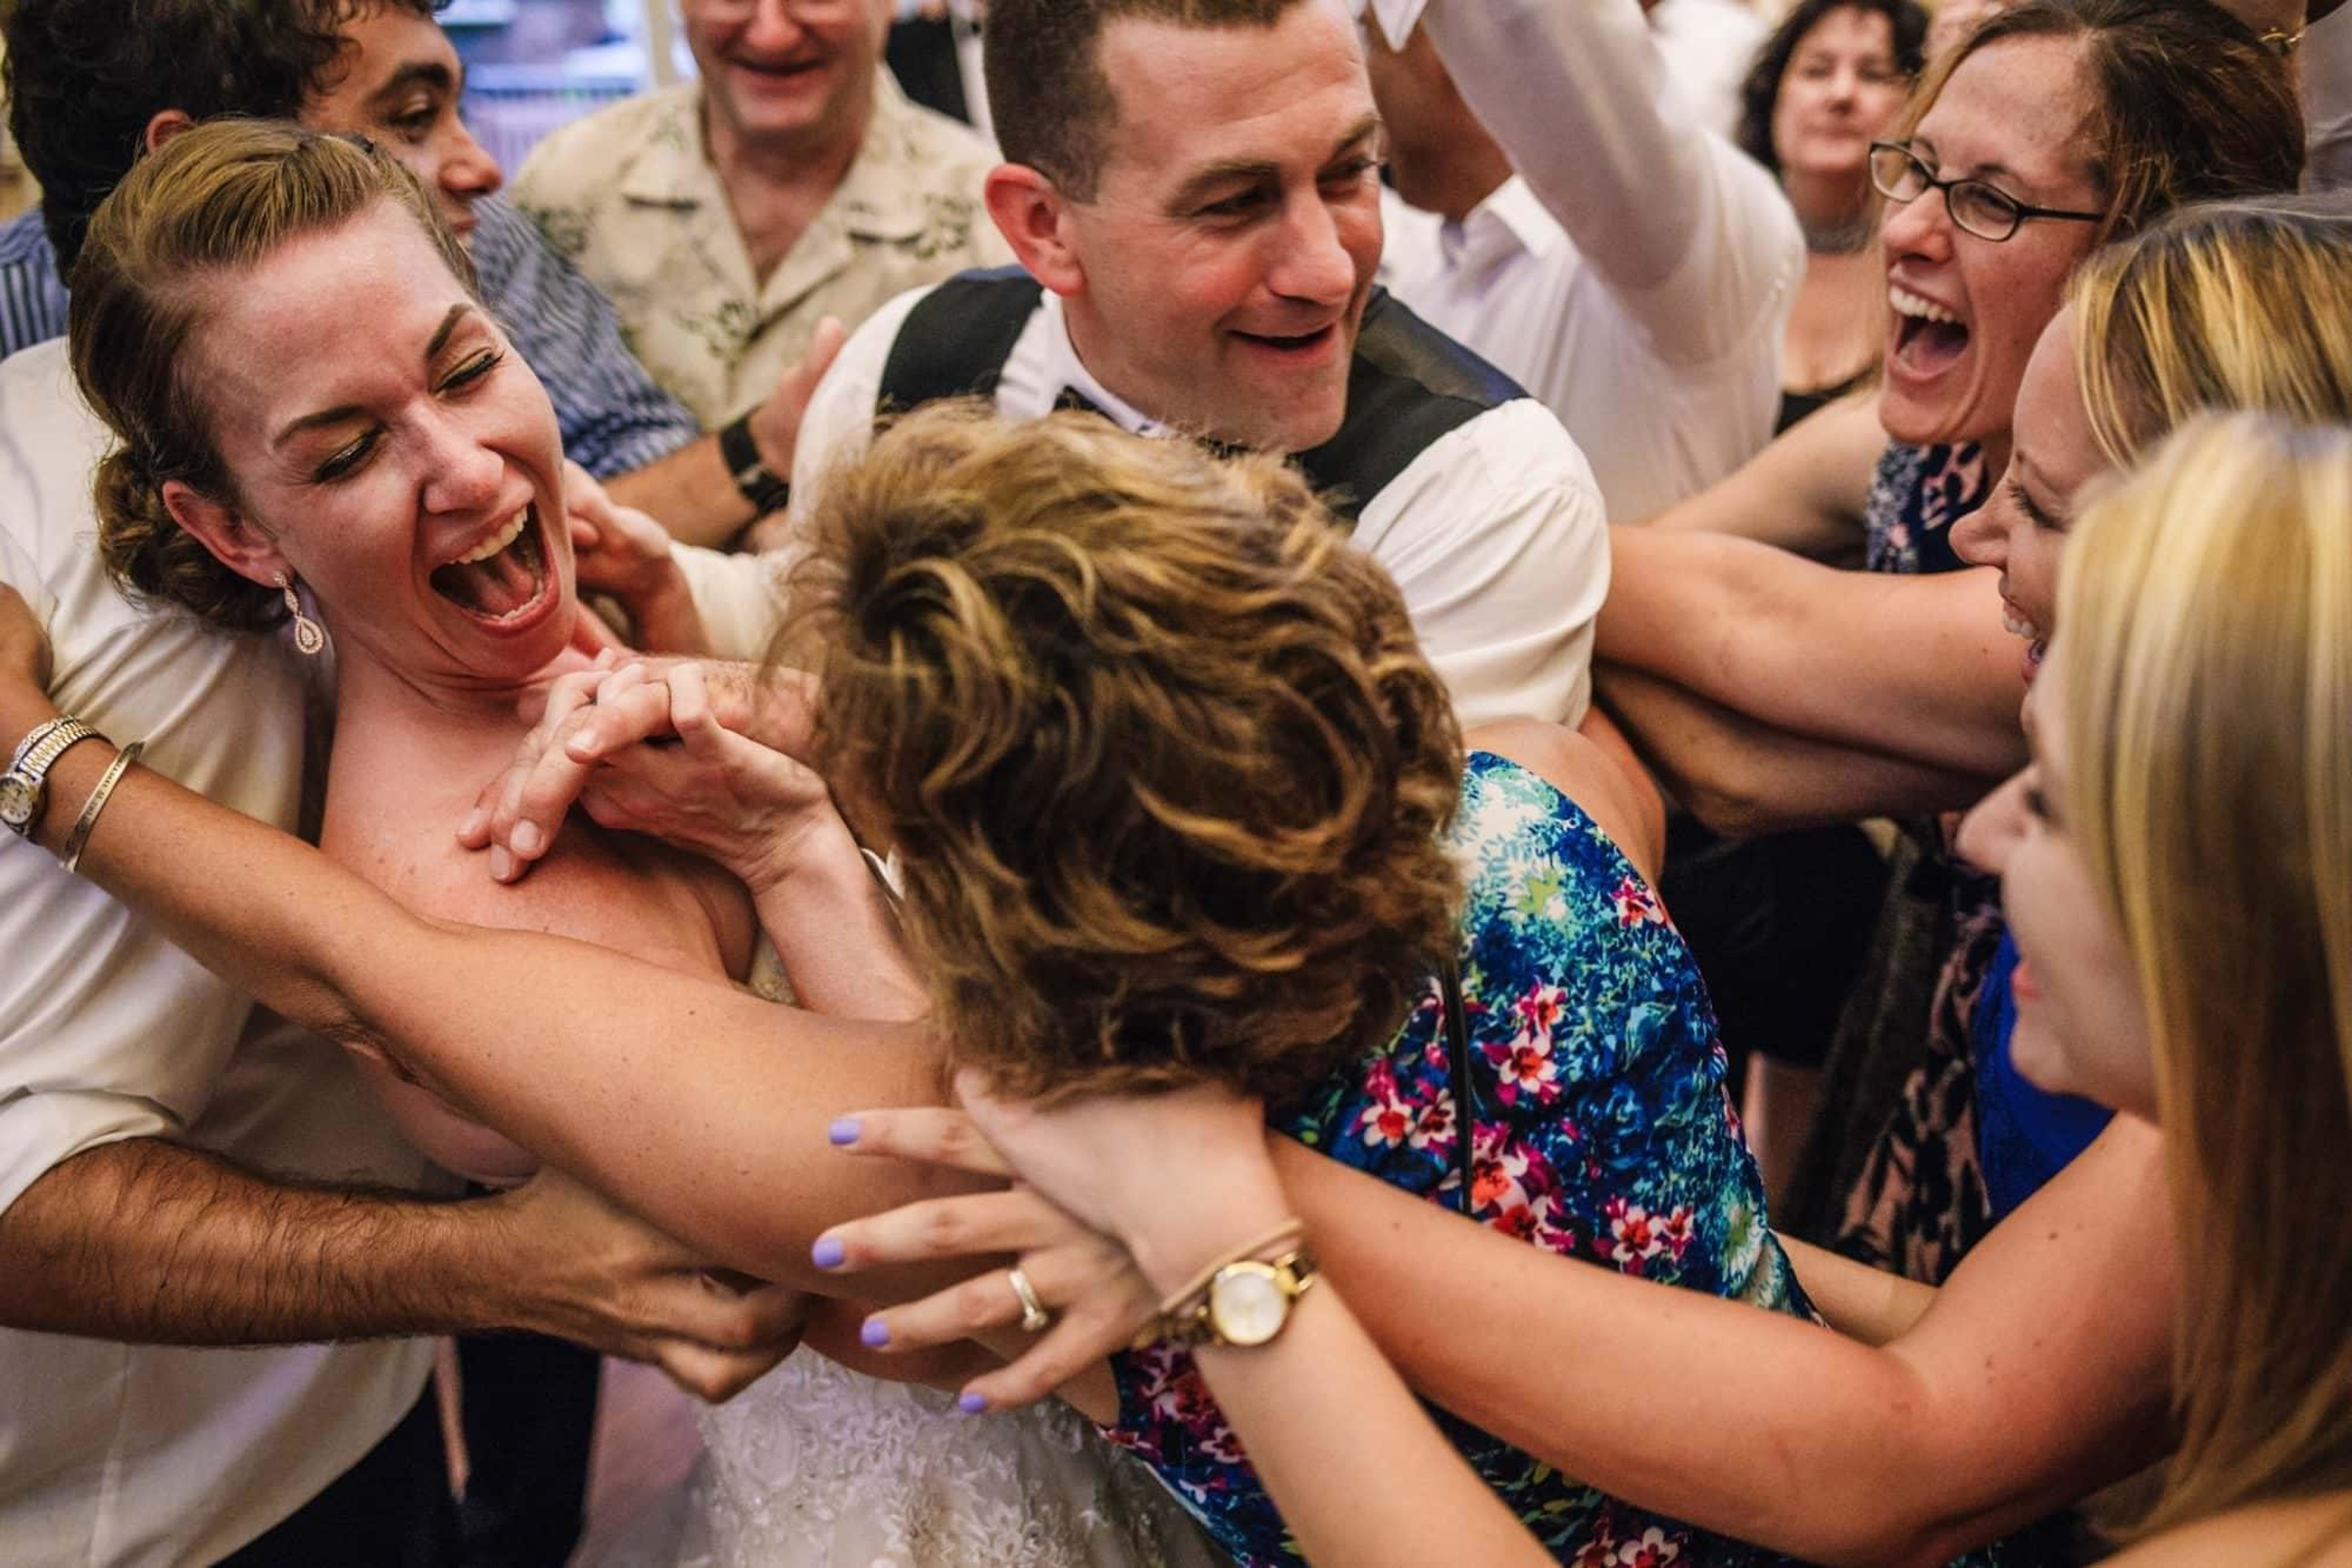 Bride and groom surrounded by guests - photo by Photography by Brea